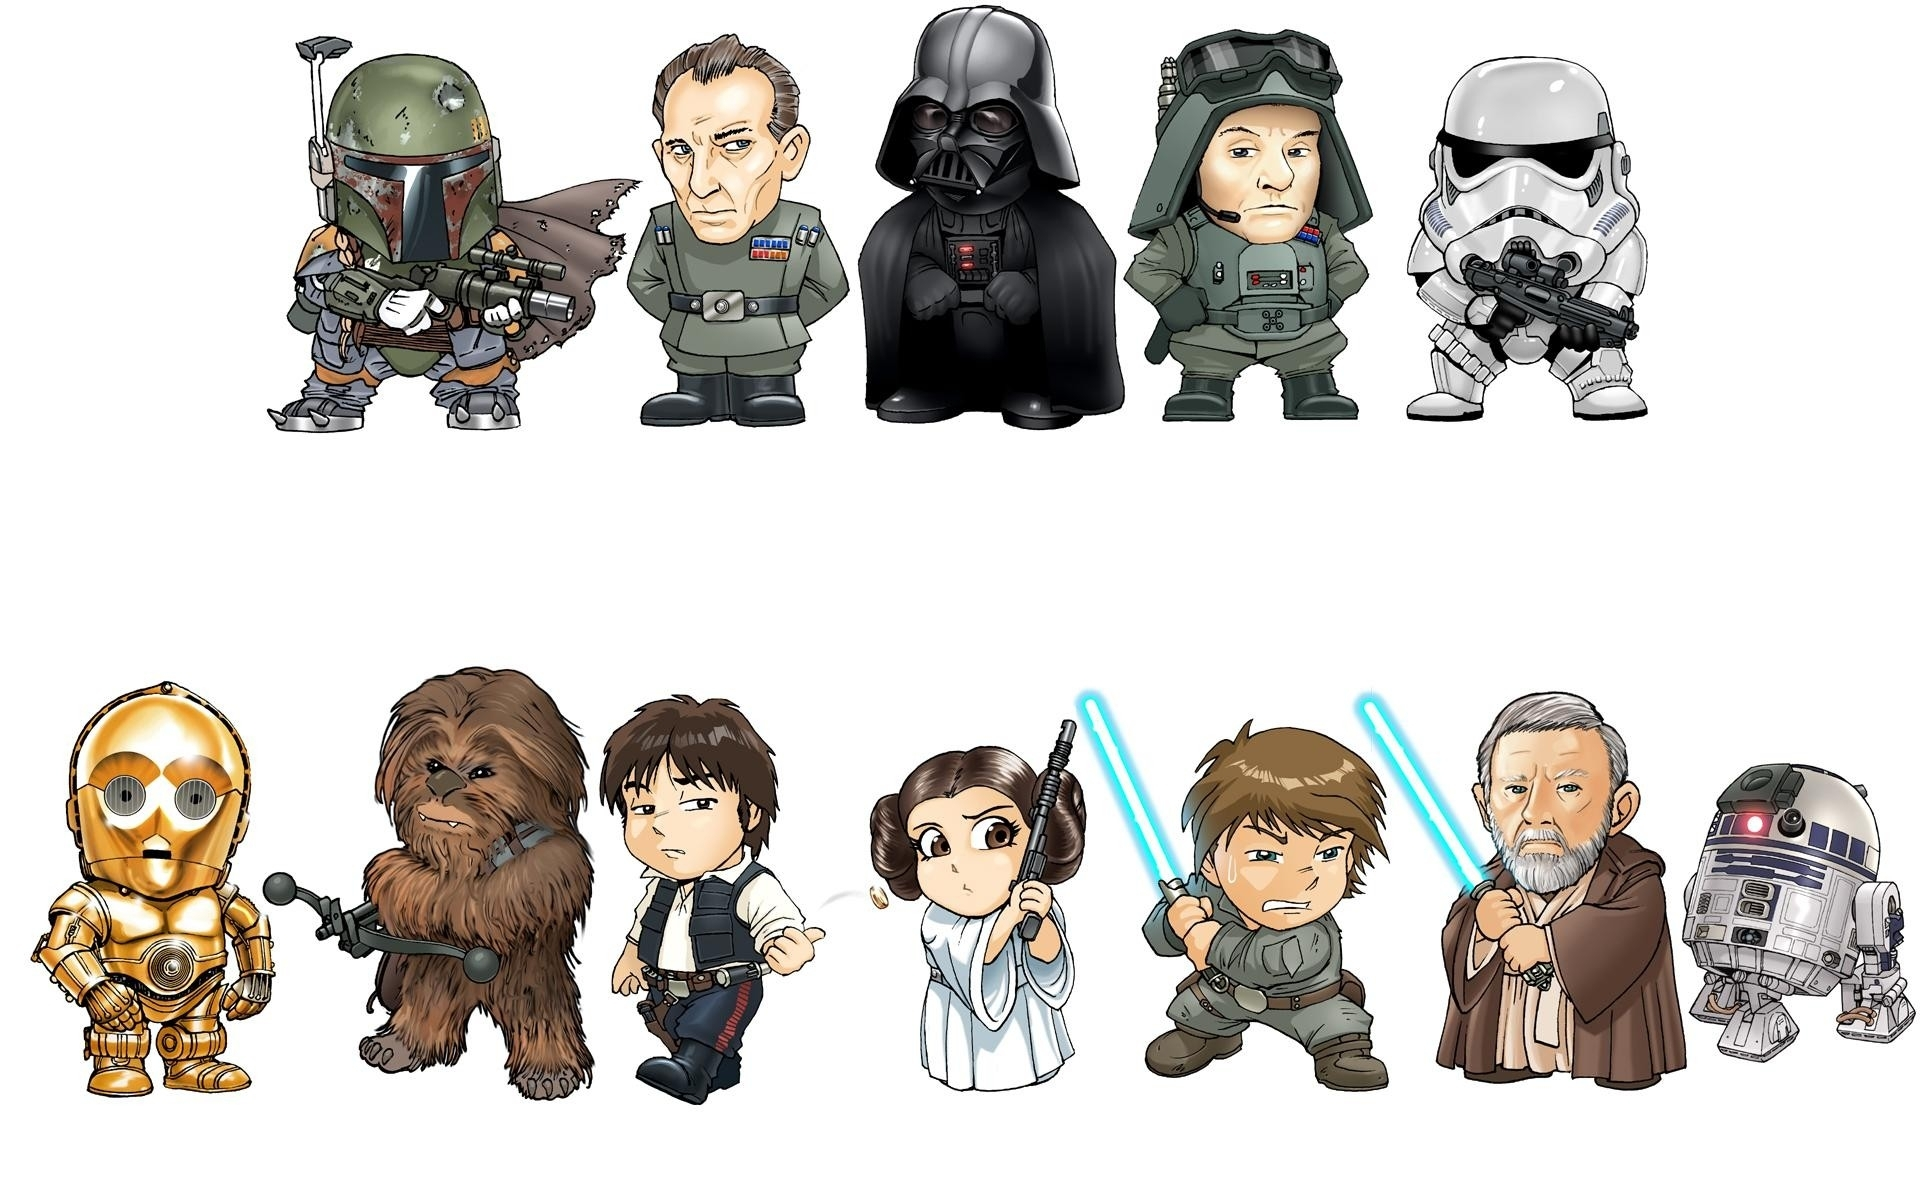 Star Wars Character Bobble Heads Hd Wallpaper Background Image 1920x1200 Id 306257 Wallpaper Abyss